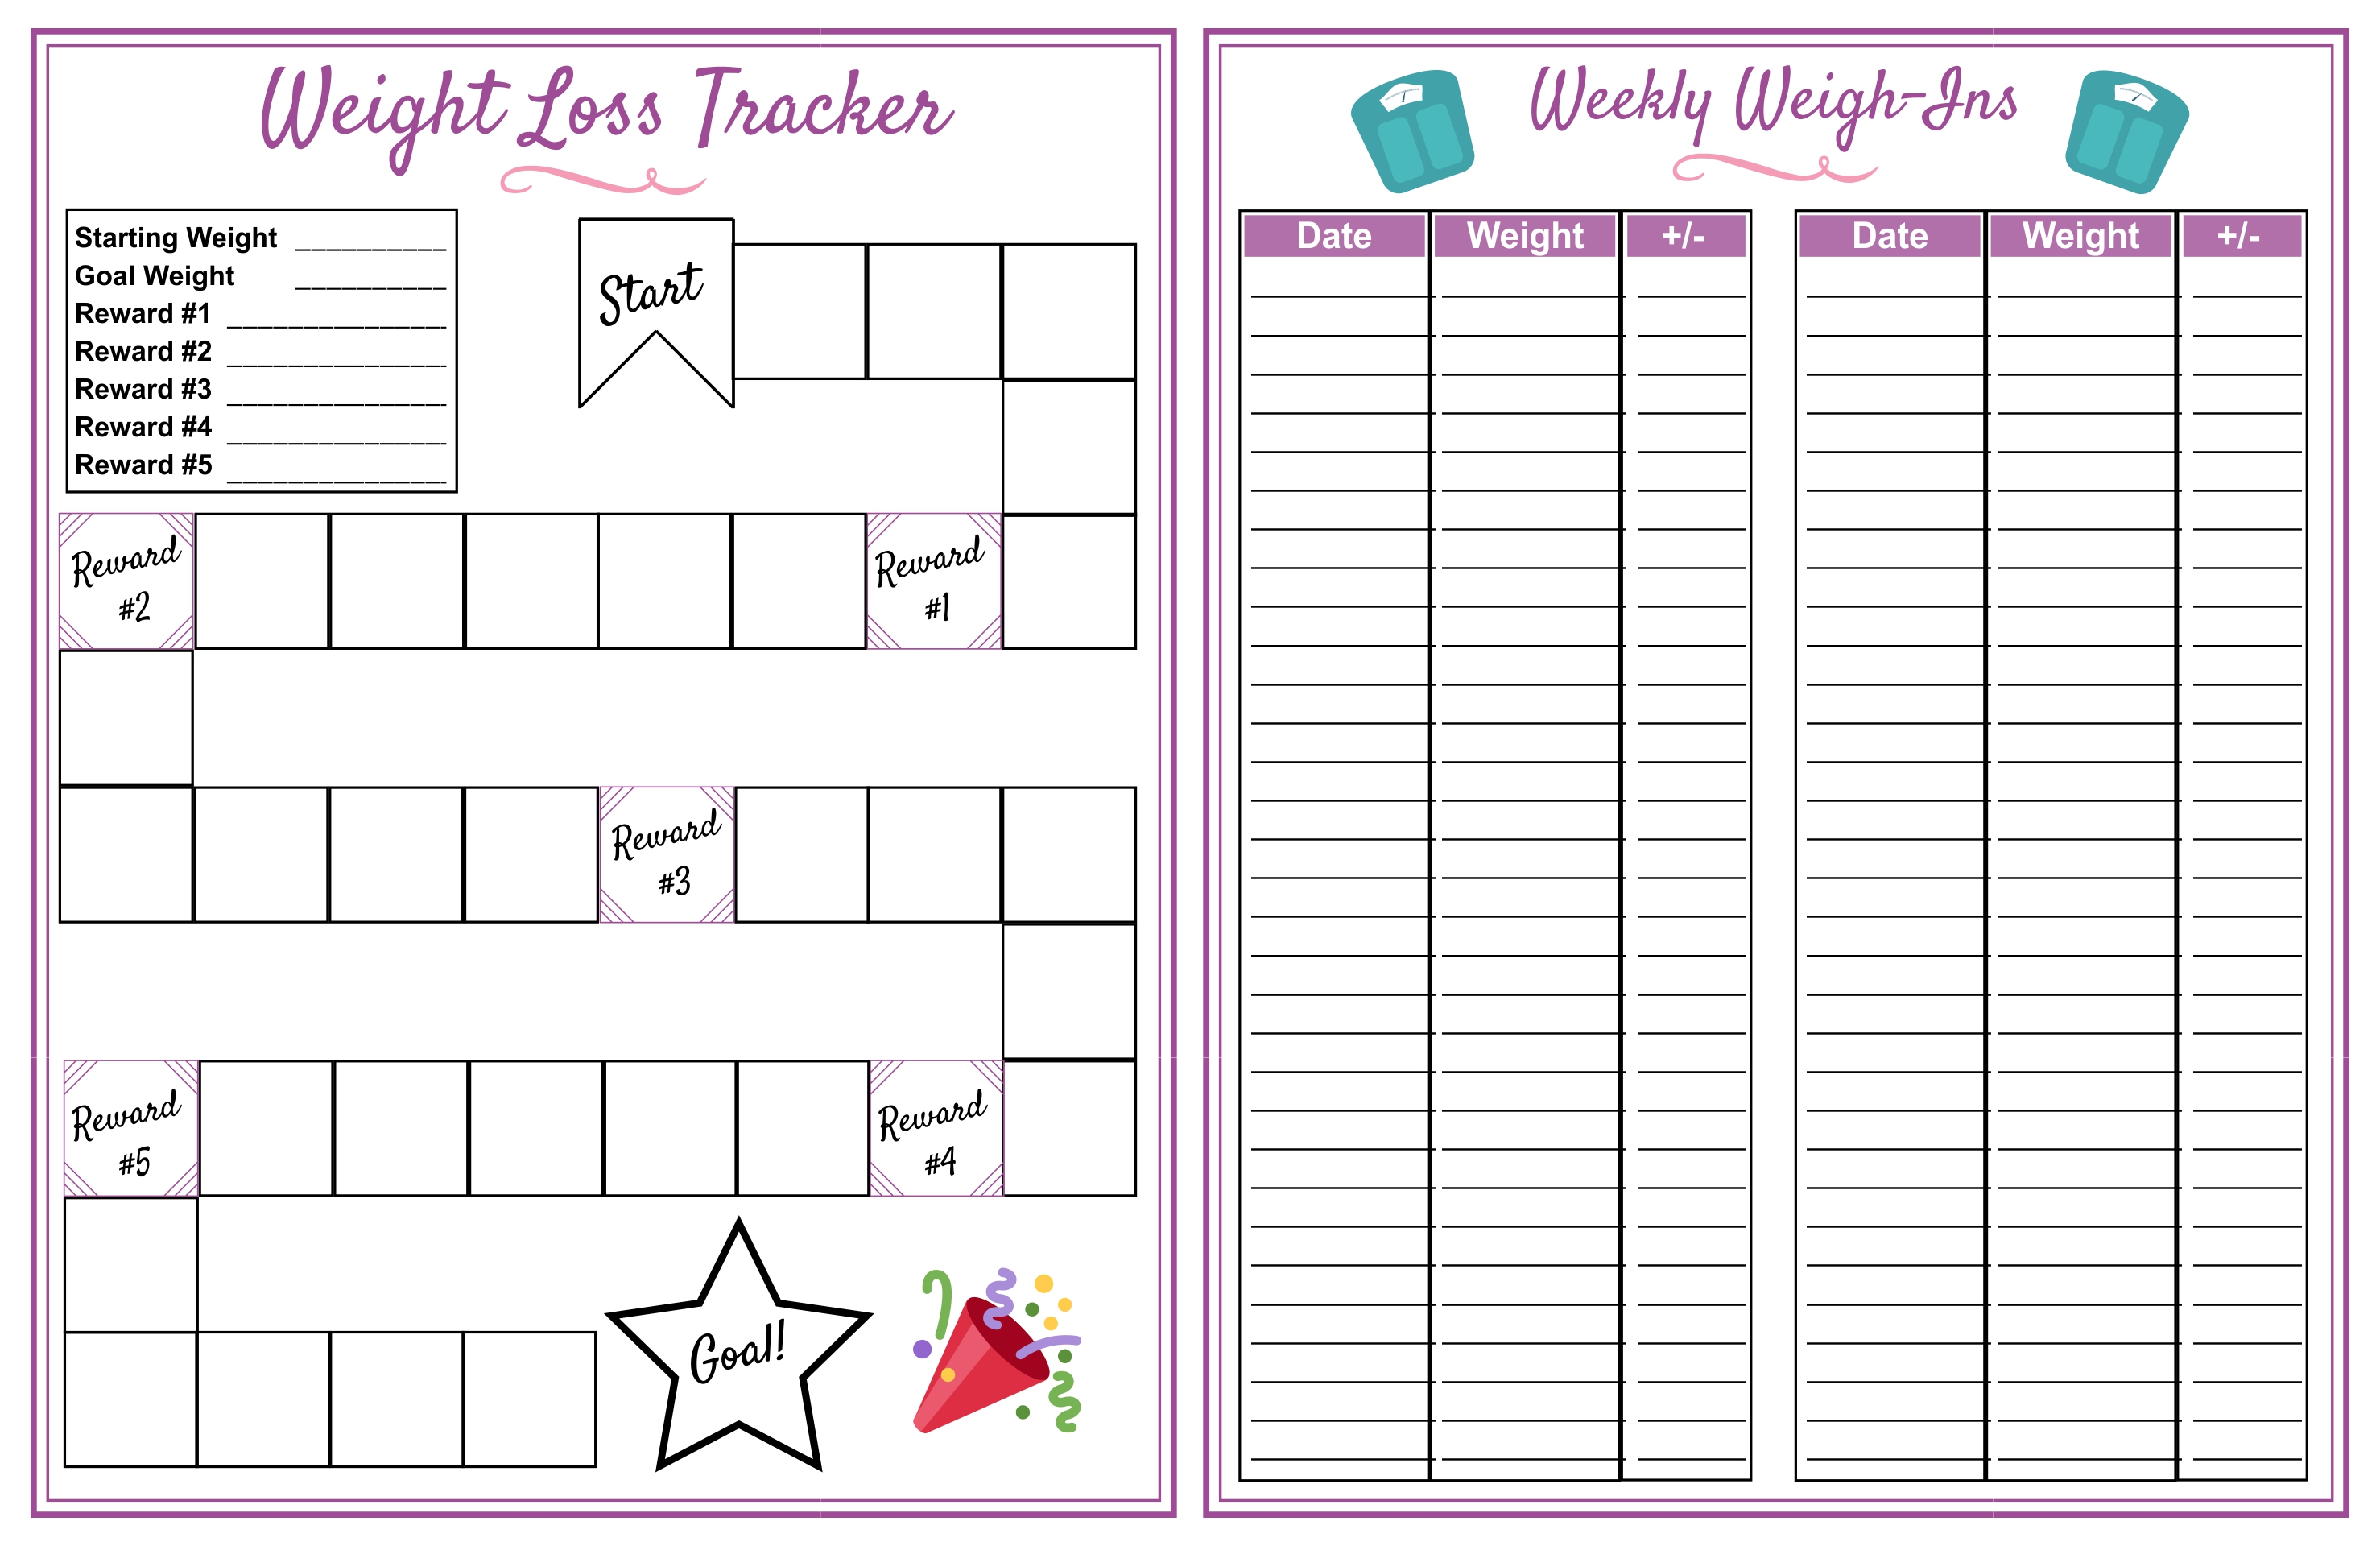 weight loss goals template - 8 best images of weight loss planner printable free